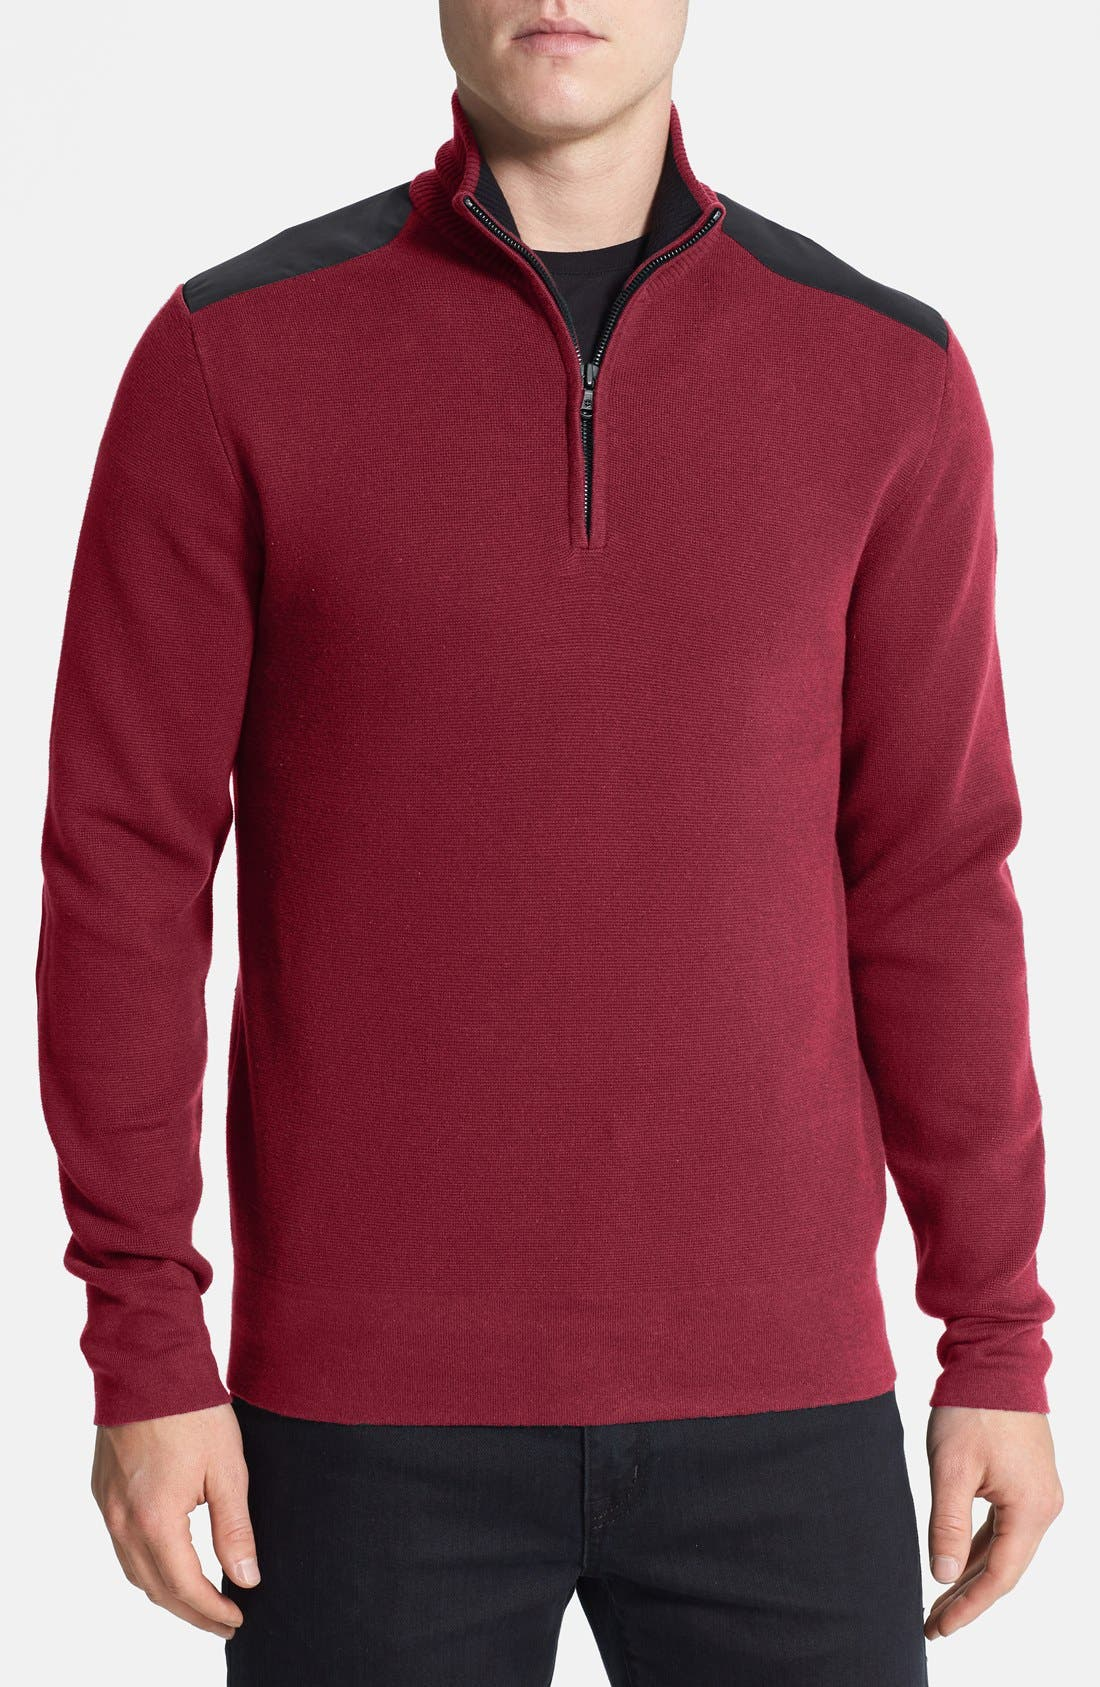 Alternate Image 1 Selected - Victorinox Swiss Army® 'Maverick' Tailored Fit Half Zip Sweater (Online Only)